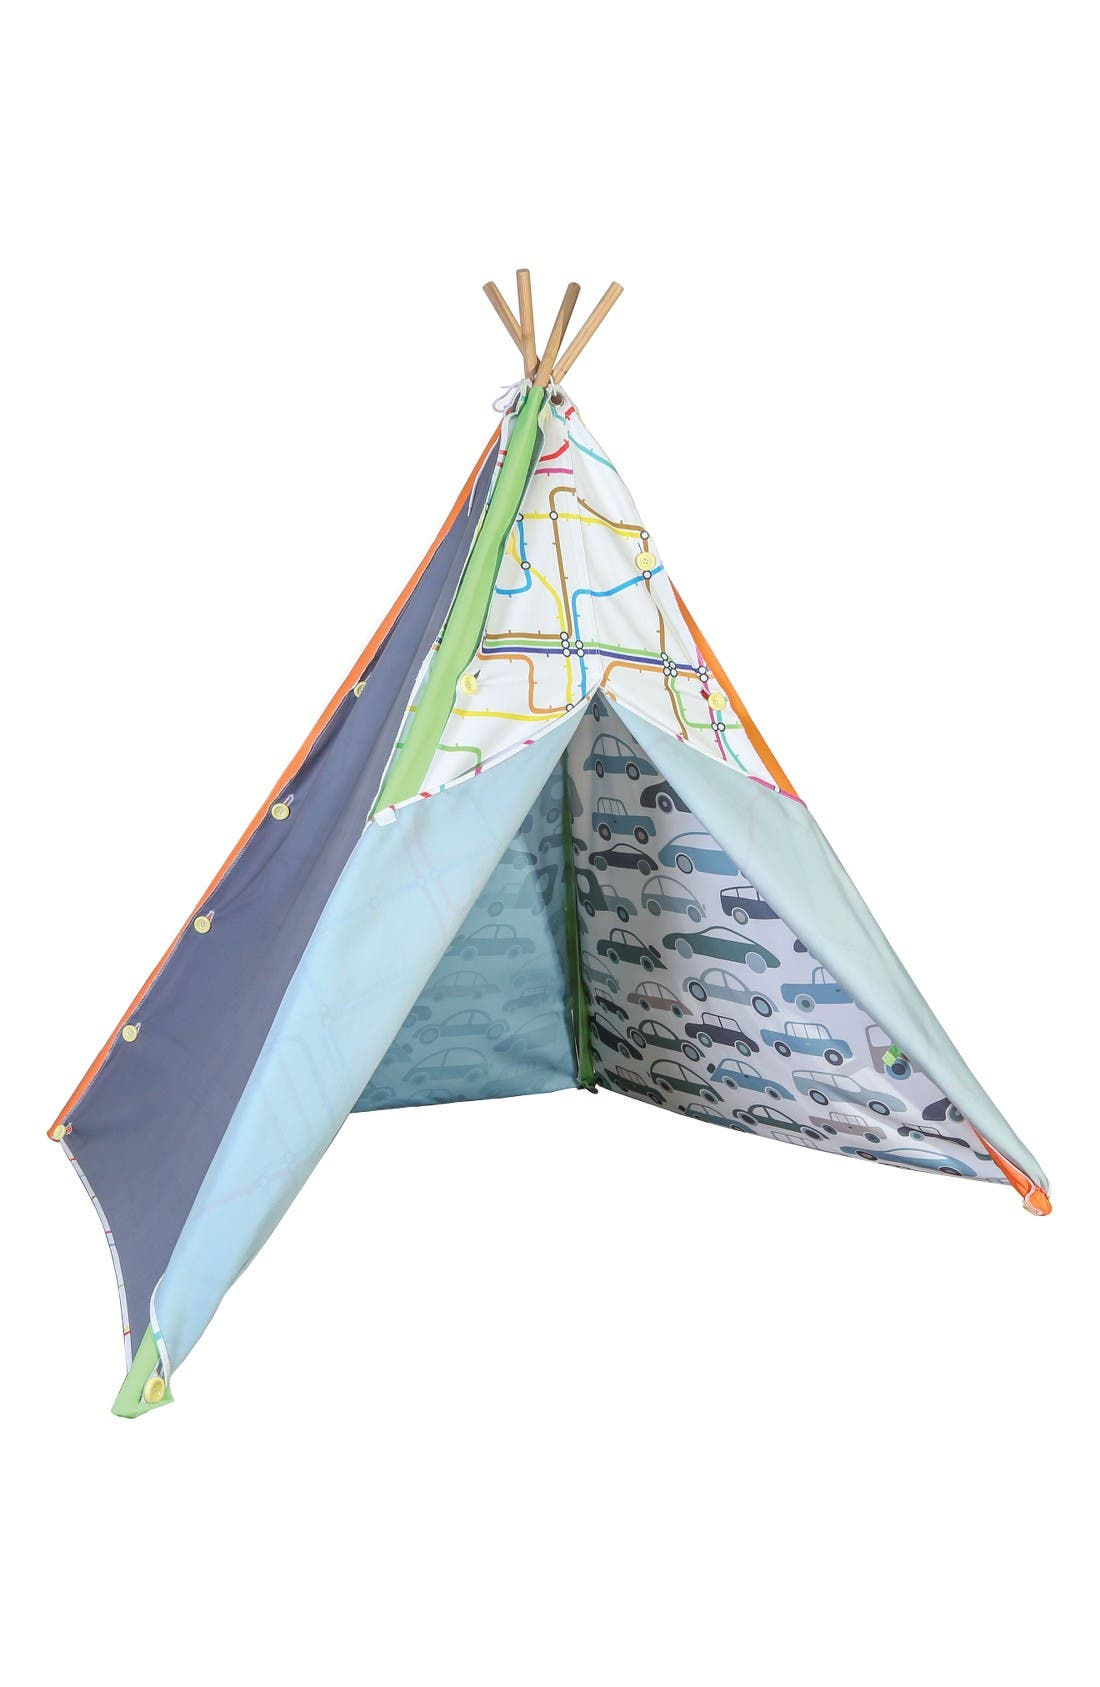 Alternate Image 1 Selected - Pacific Play Tents Traffic Jam Interchangeable Teepee Play Tent